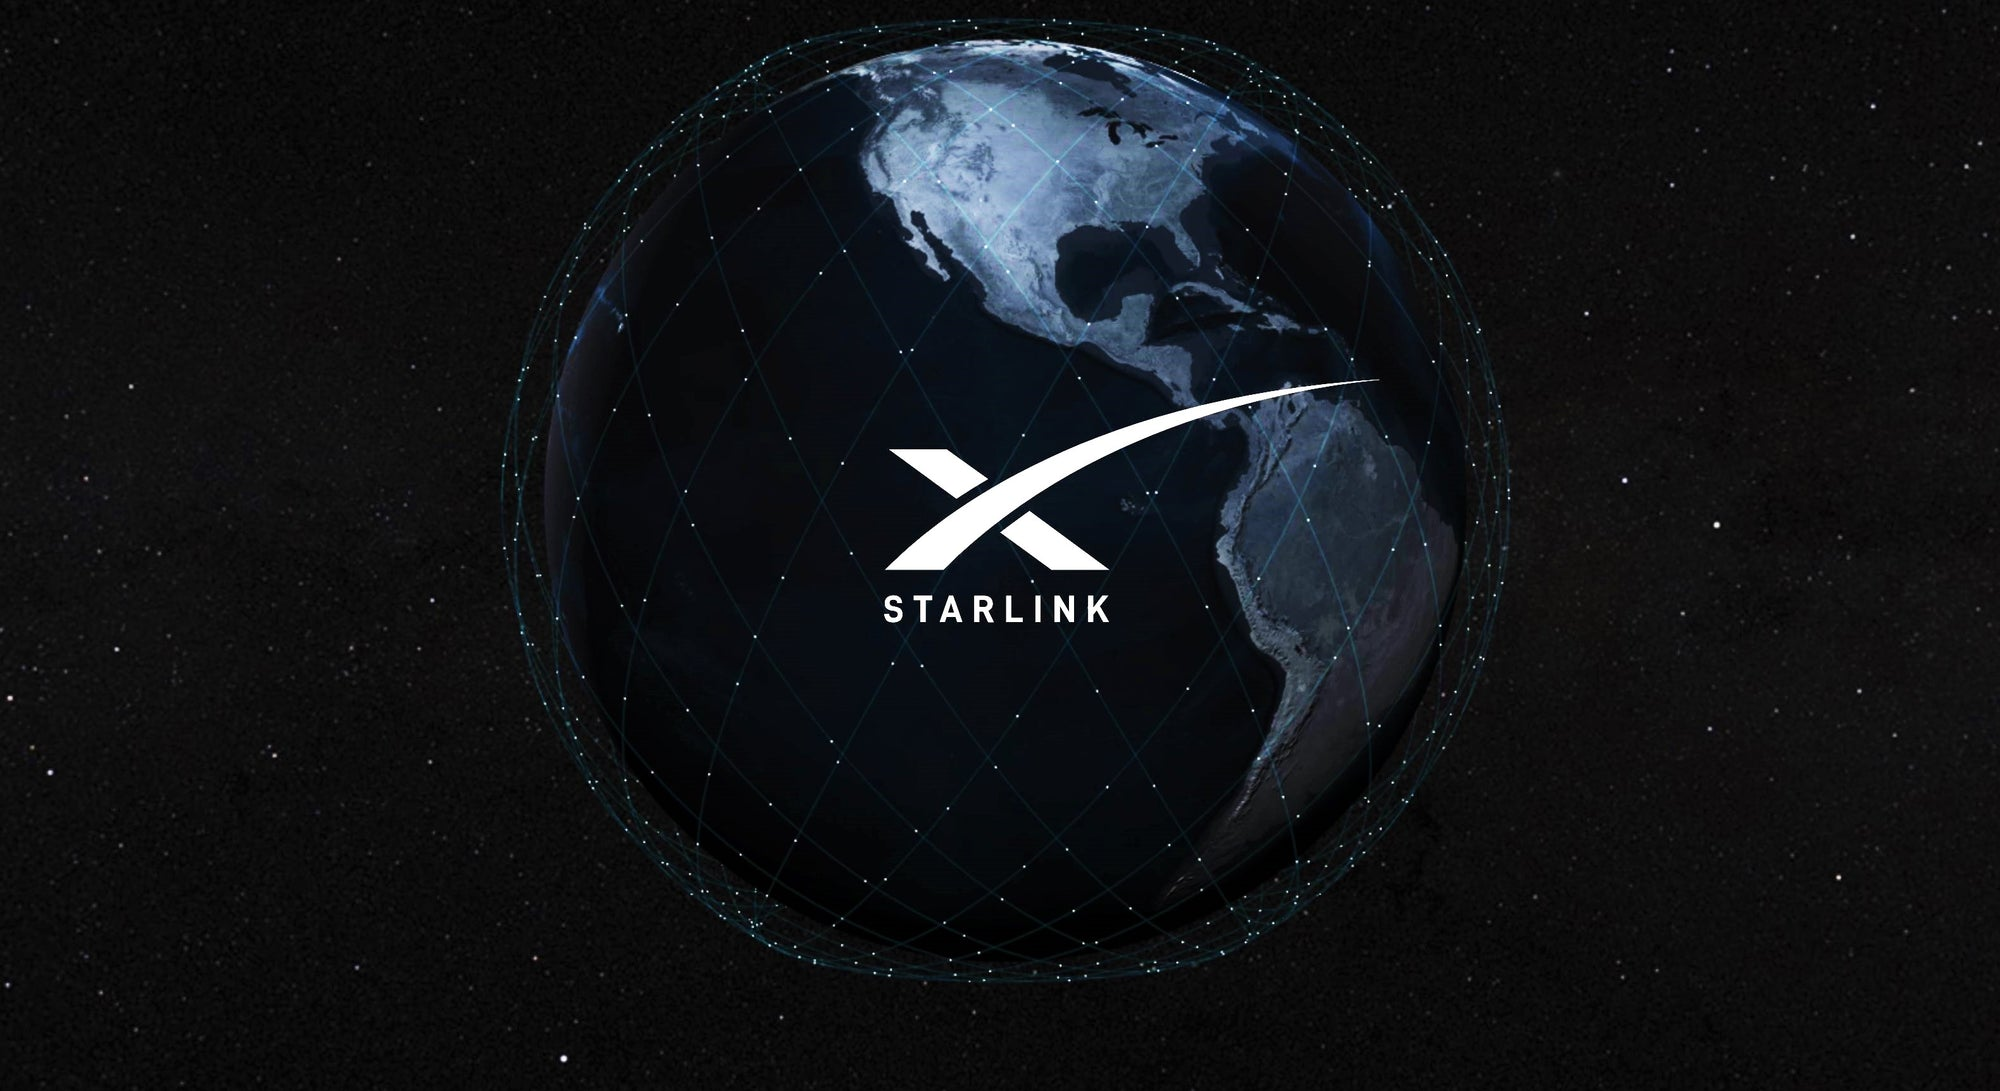 SpaceX: Starlink DarkSat shows 'a notable reduction' in brightness